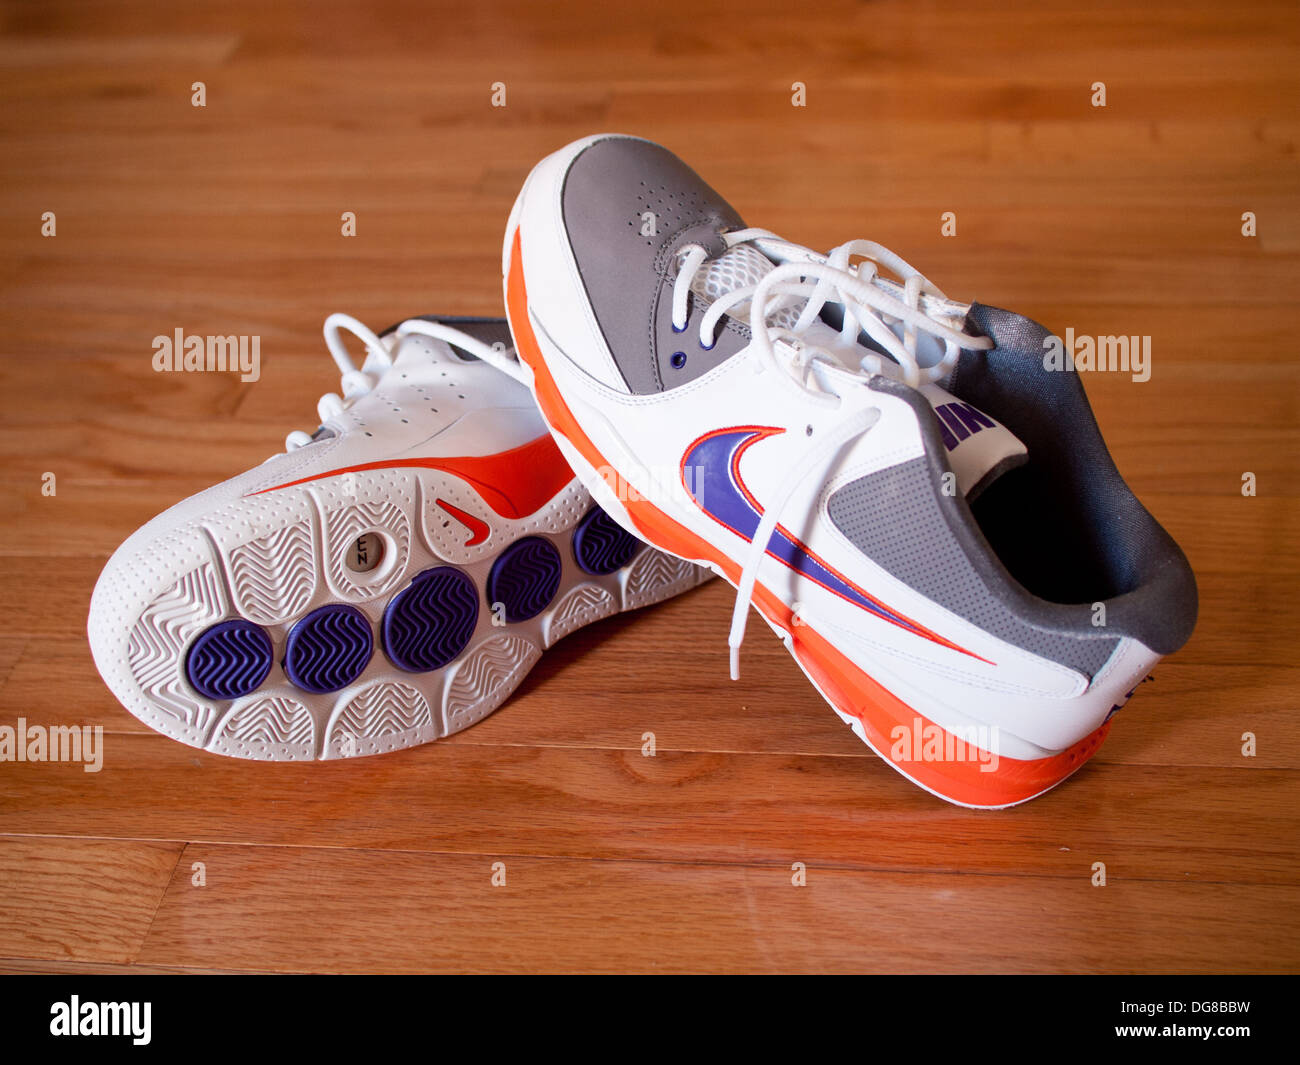 A pair of Nike Zoom Go Low Steve Nash men's basketball shoes. - Stock Image